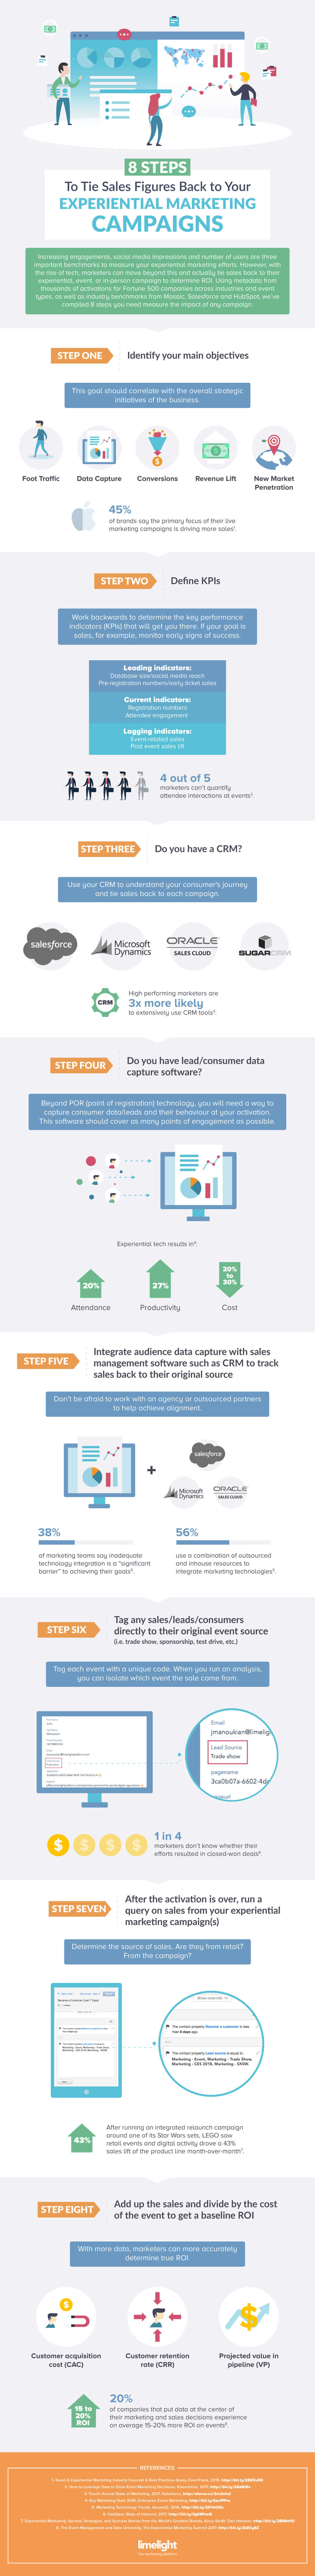 Sales-Figures-Experiential-Marketing-Campaigns-Infographic